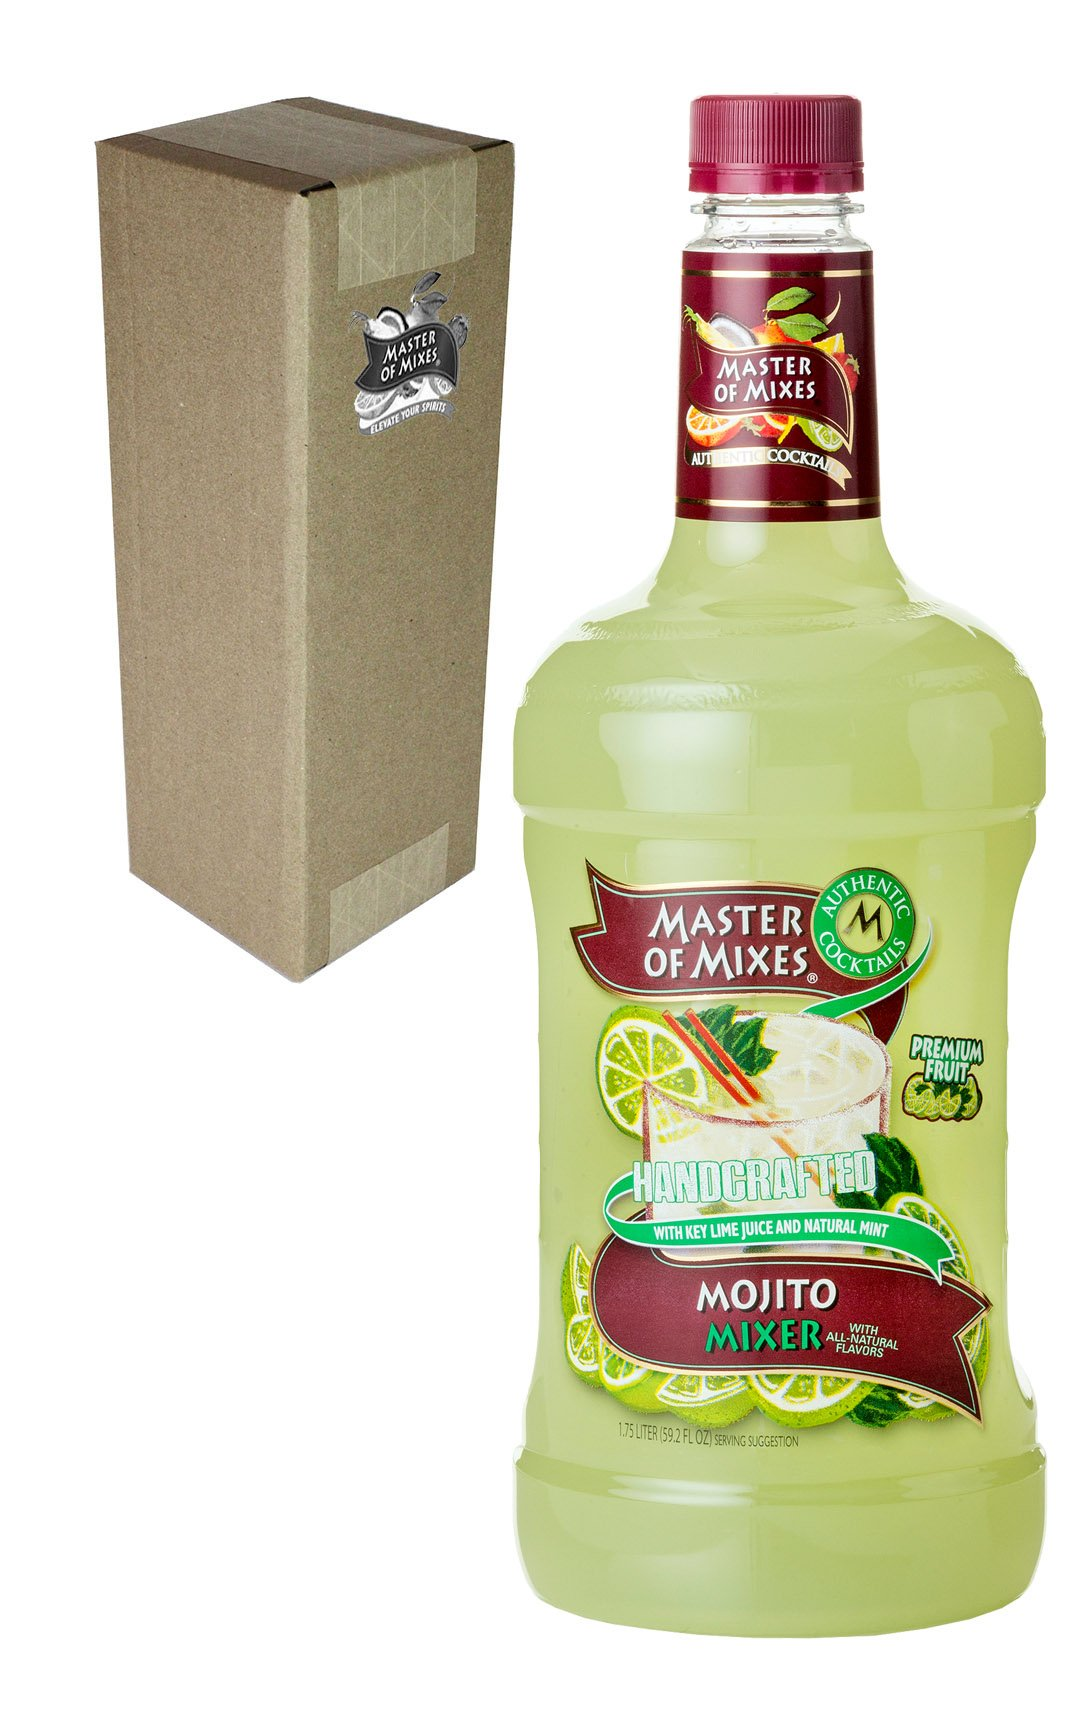 Master of Mixes Mojito Drink Mix, Ready To Use, 1.75 Liter Bottle (59.2 Fl Oz), Individually Boxed by Master of Mixes